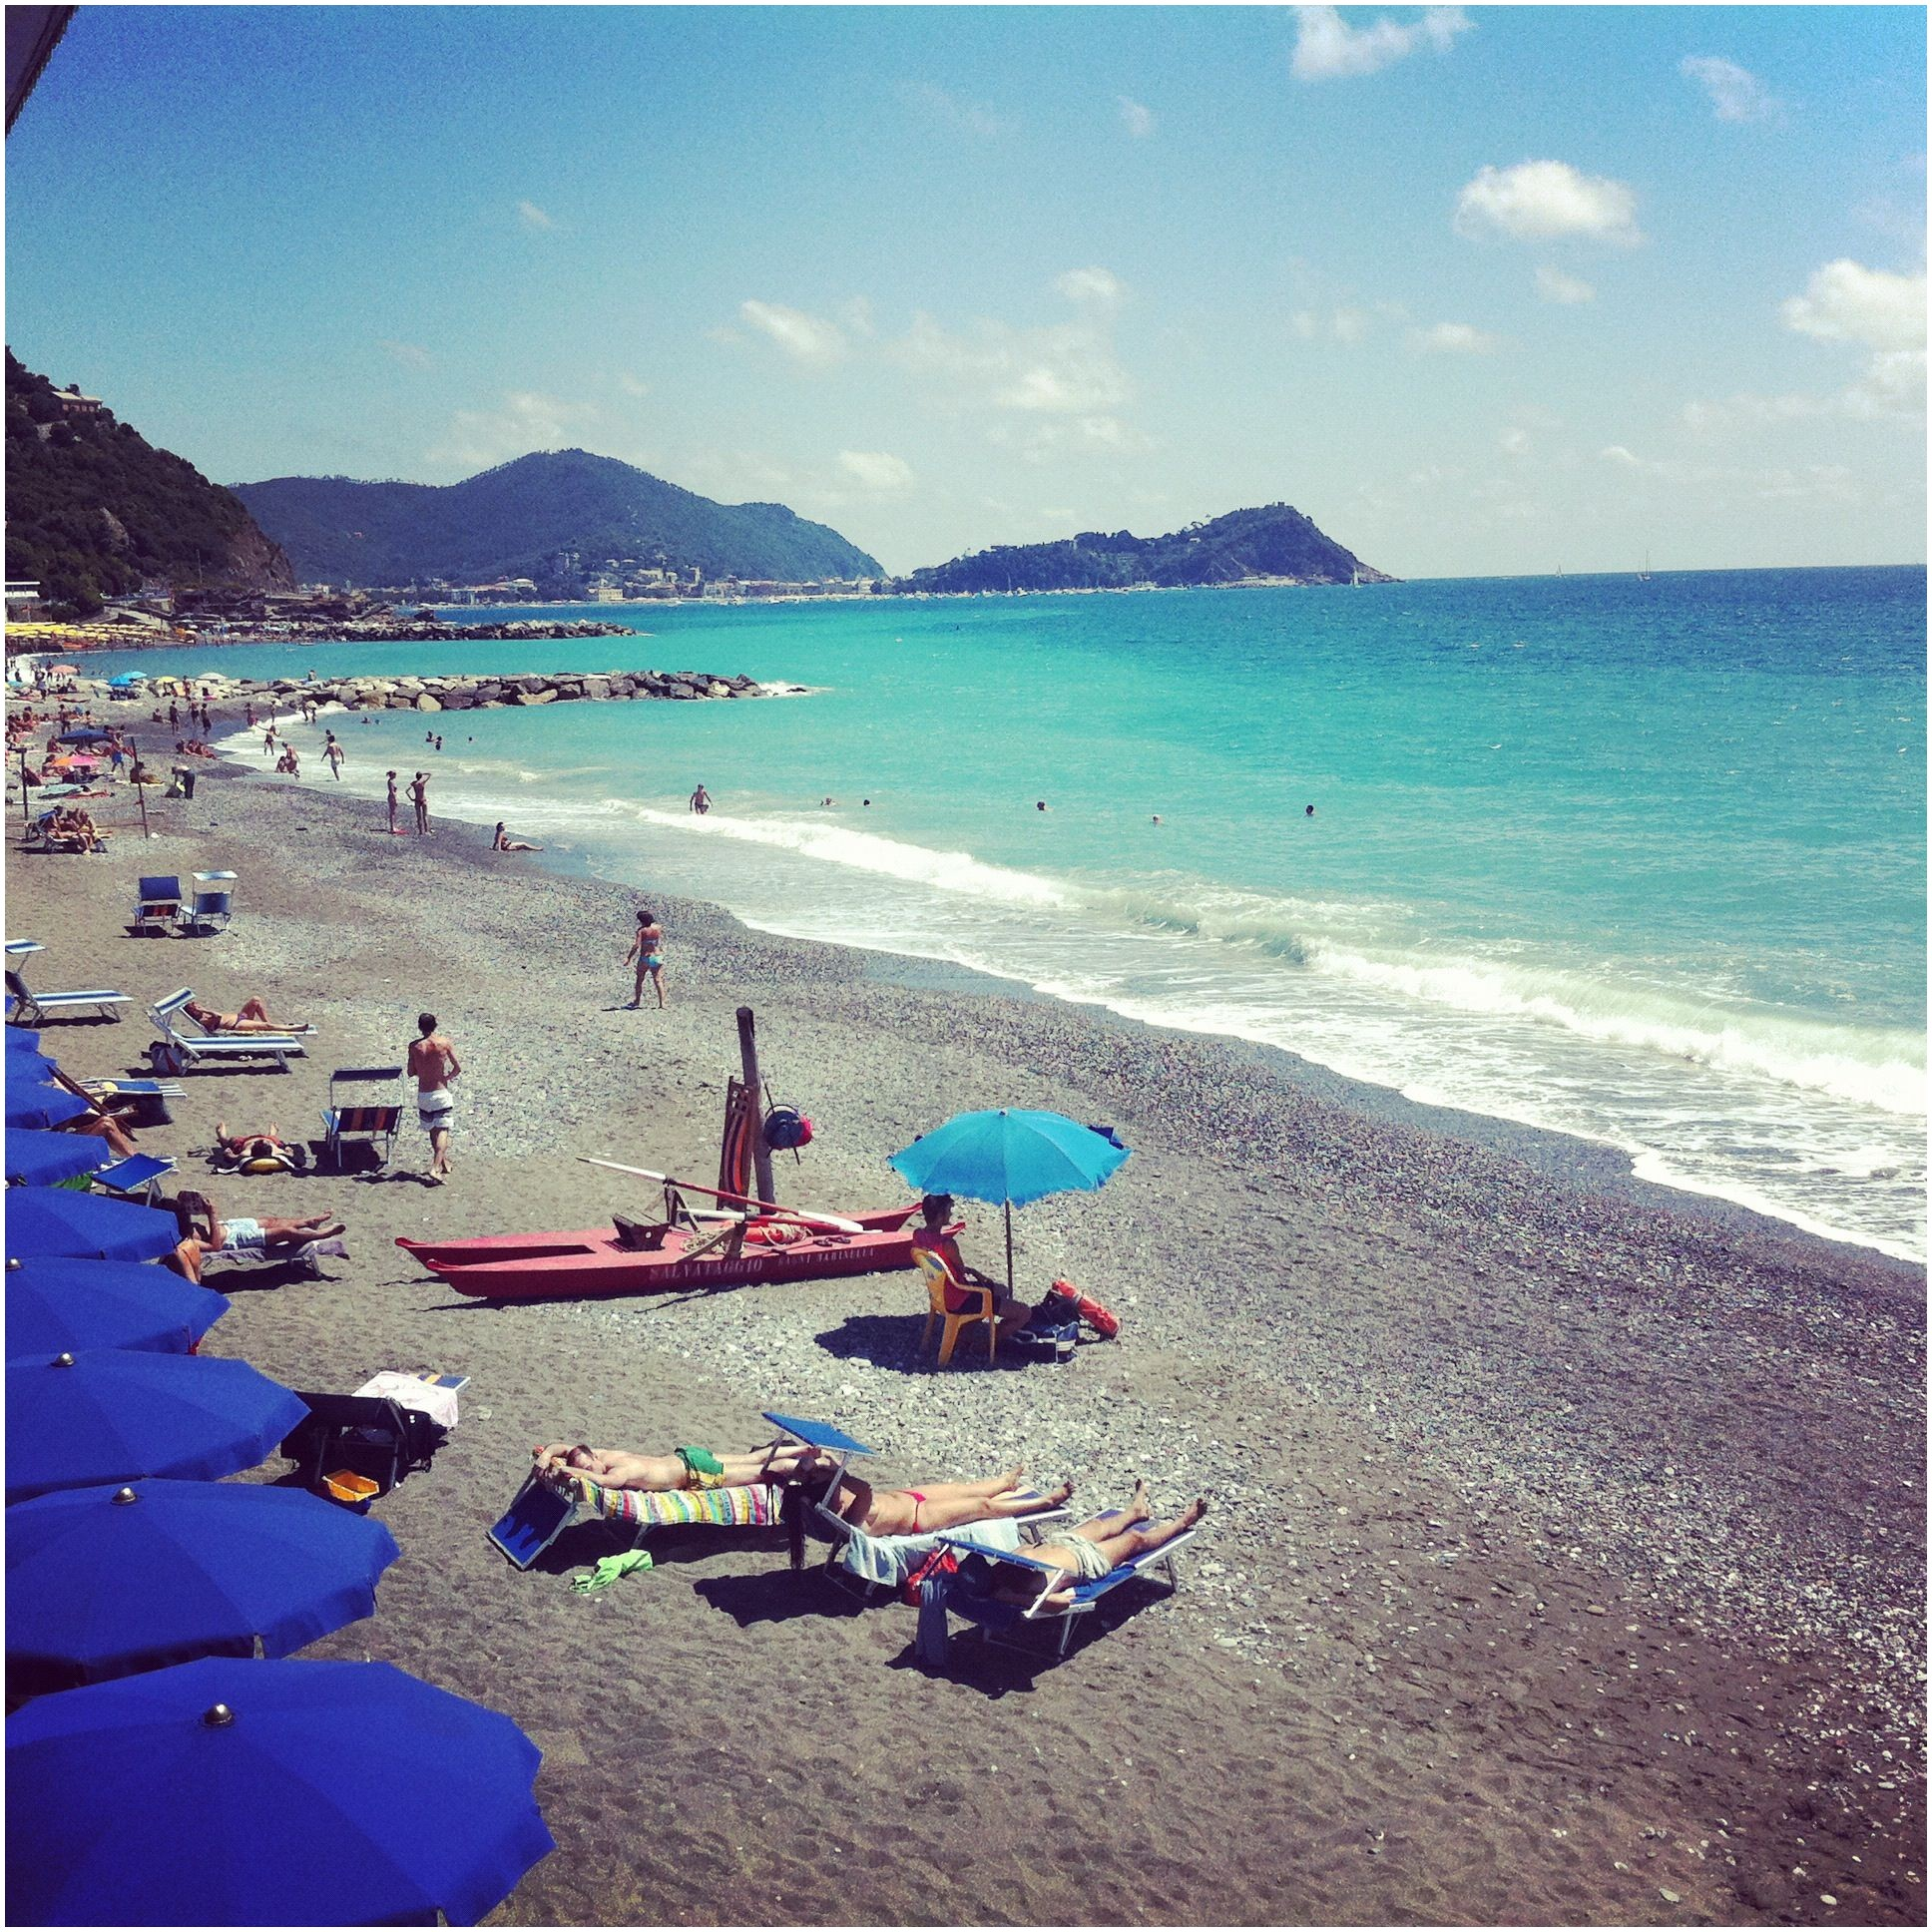 Beach In north Italy Fresh Lavagna Beach Liguria Italy Photo Credits Livia Podestá